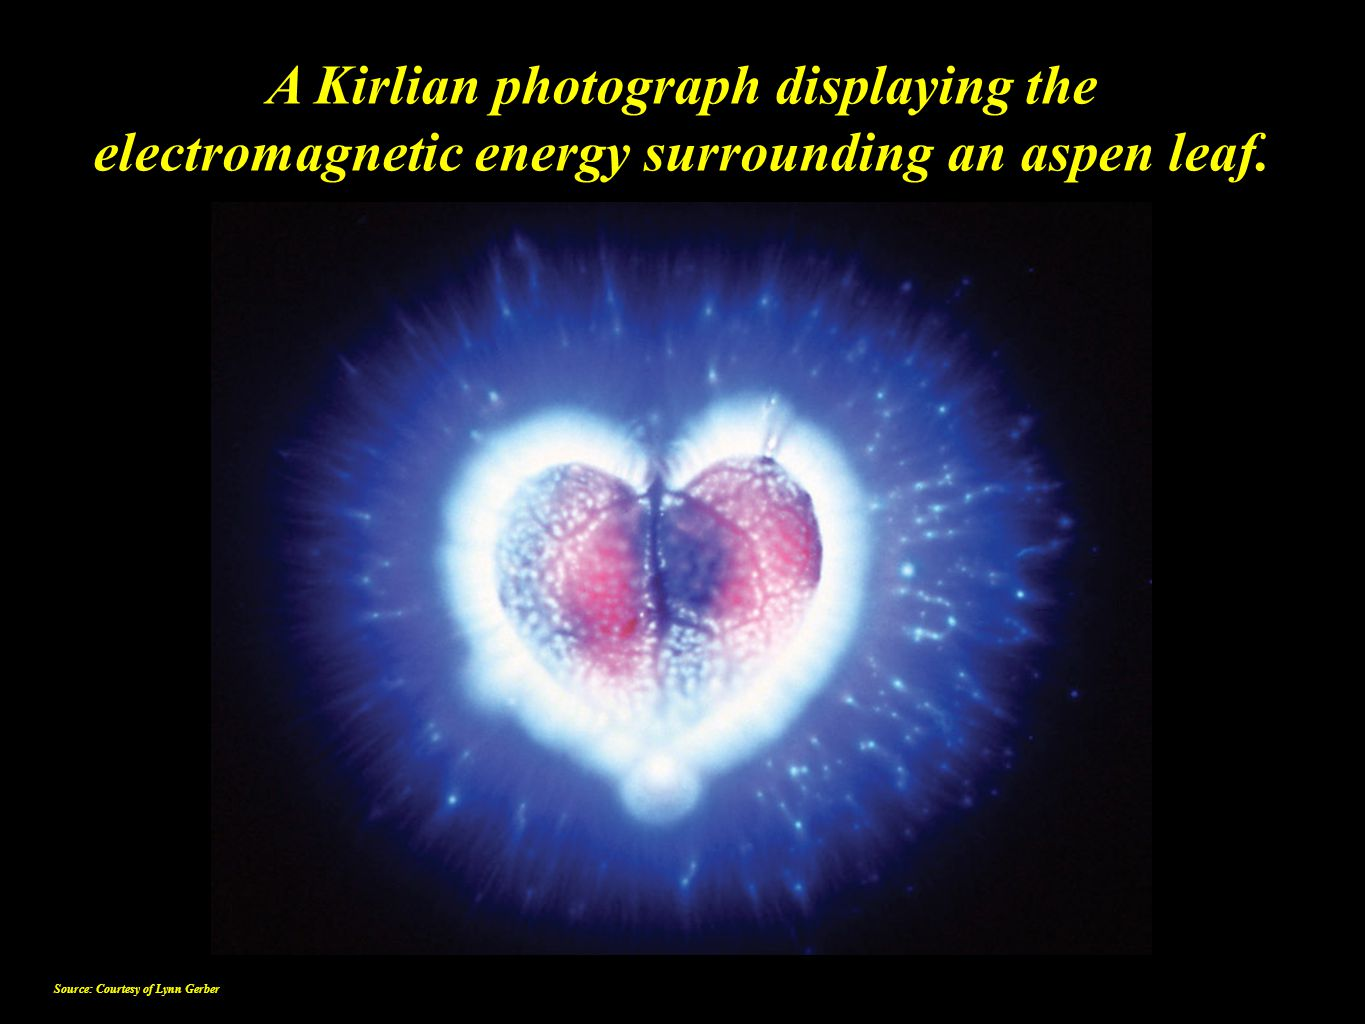 A Kirlian photograph displaying the electromagnetic energy surrounding an aspen leaf. Source: Courtesy of Lynn Gerber